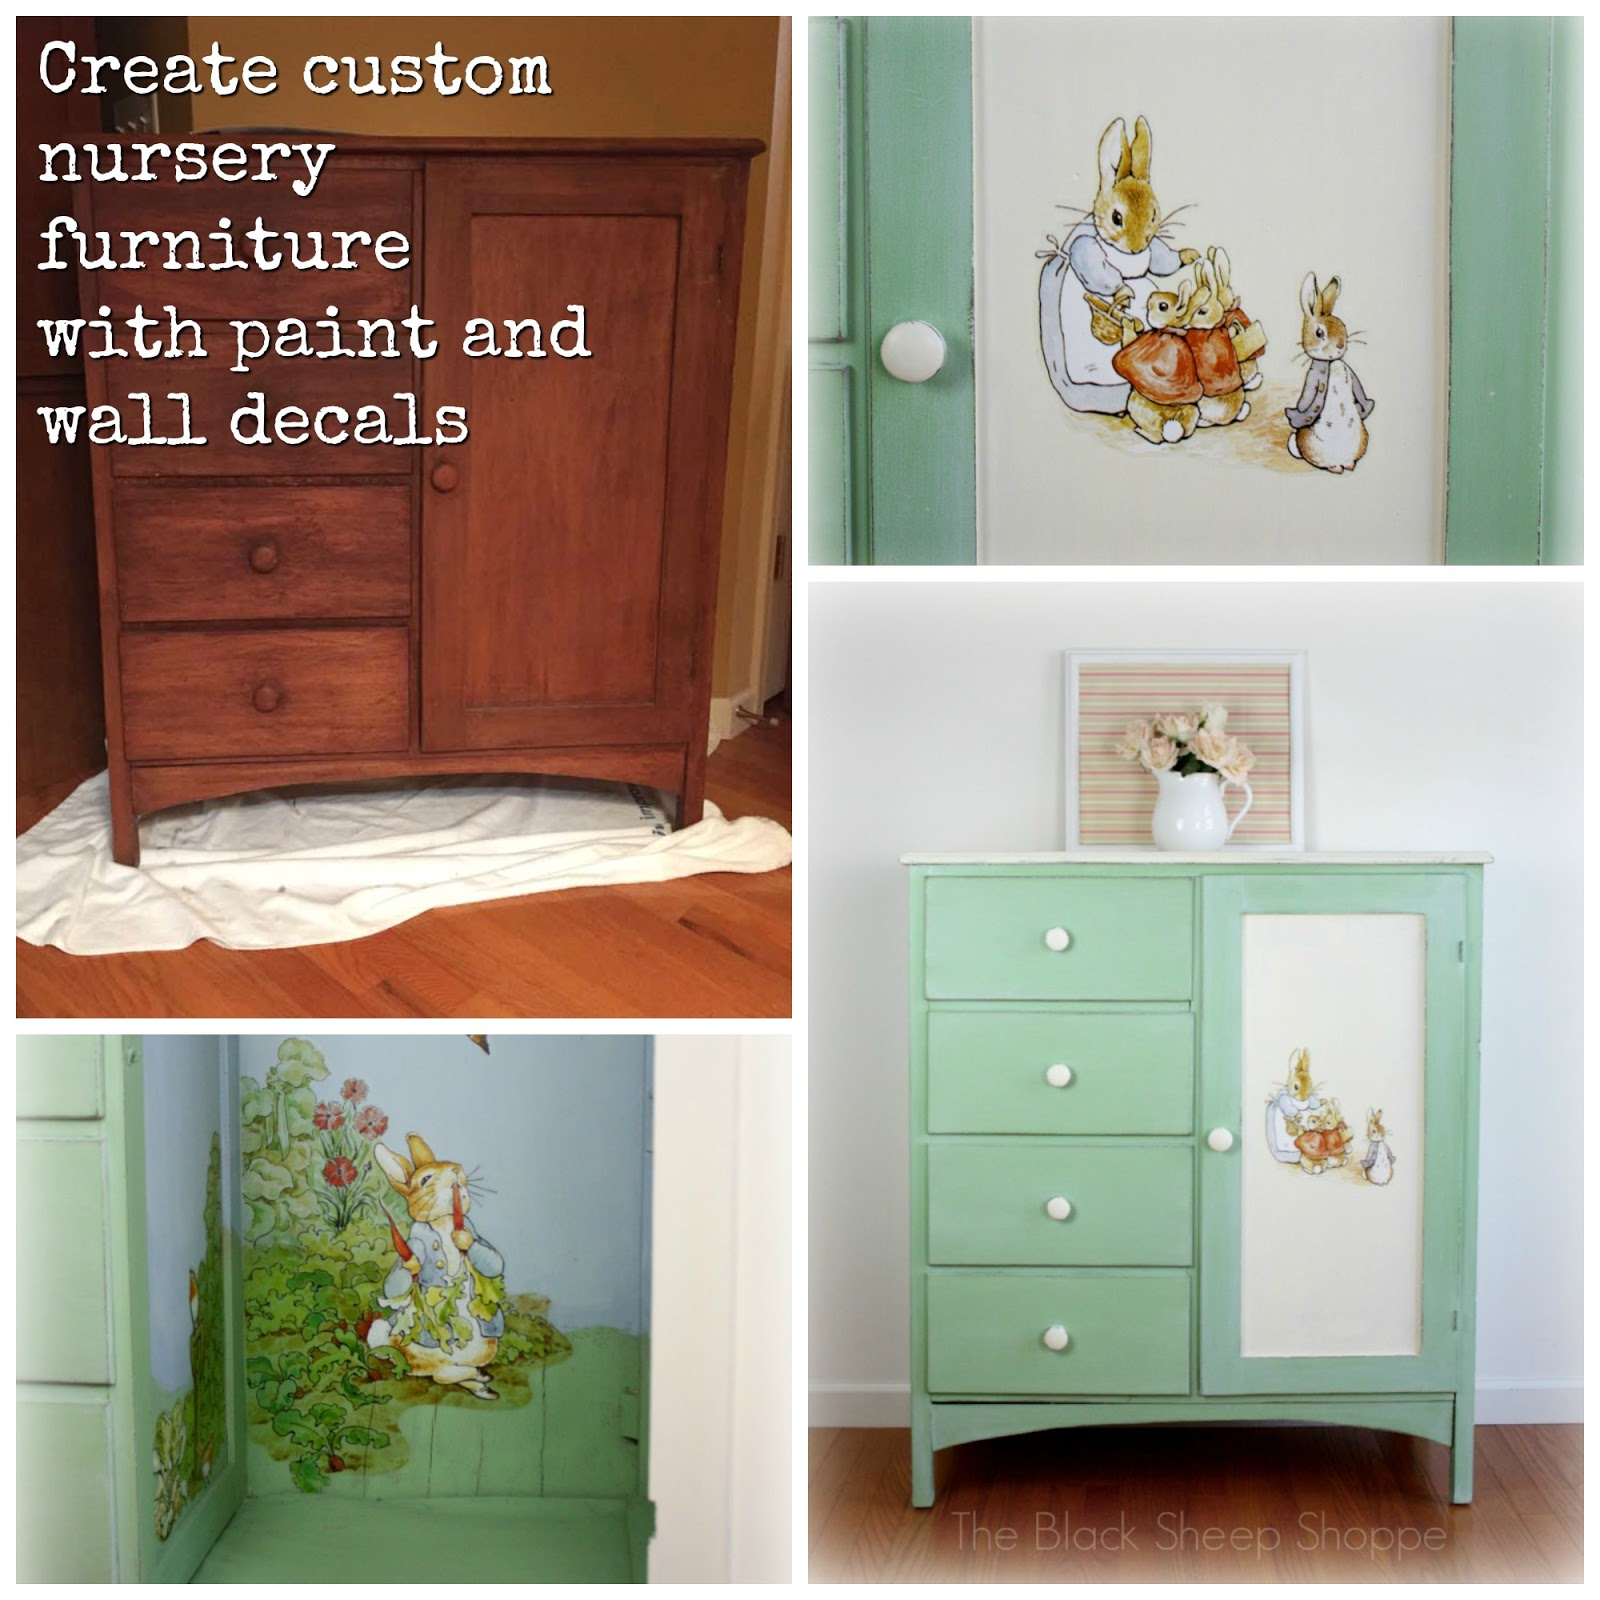 Create custom nursery furniture